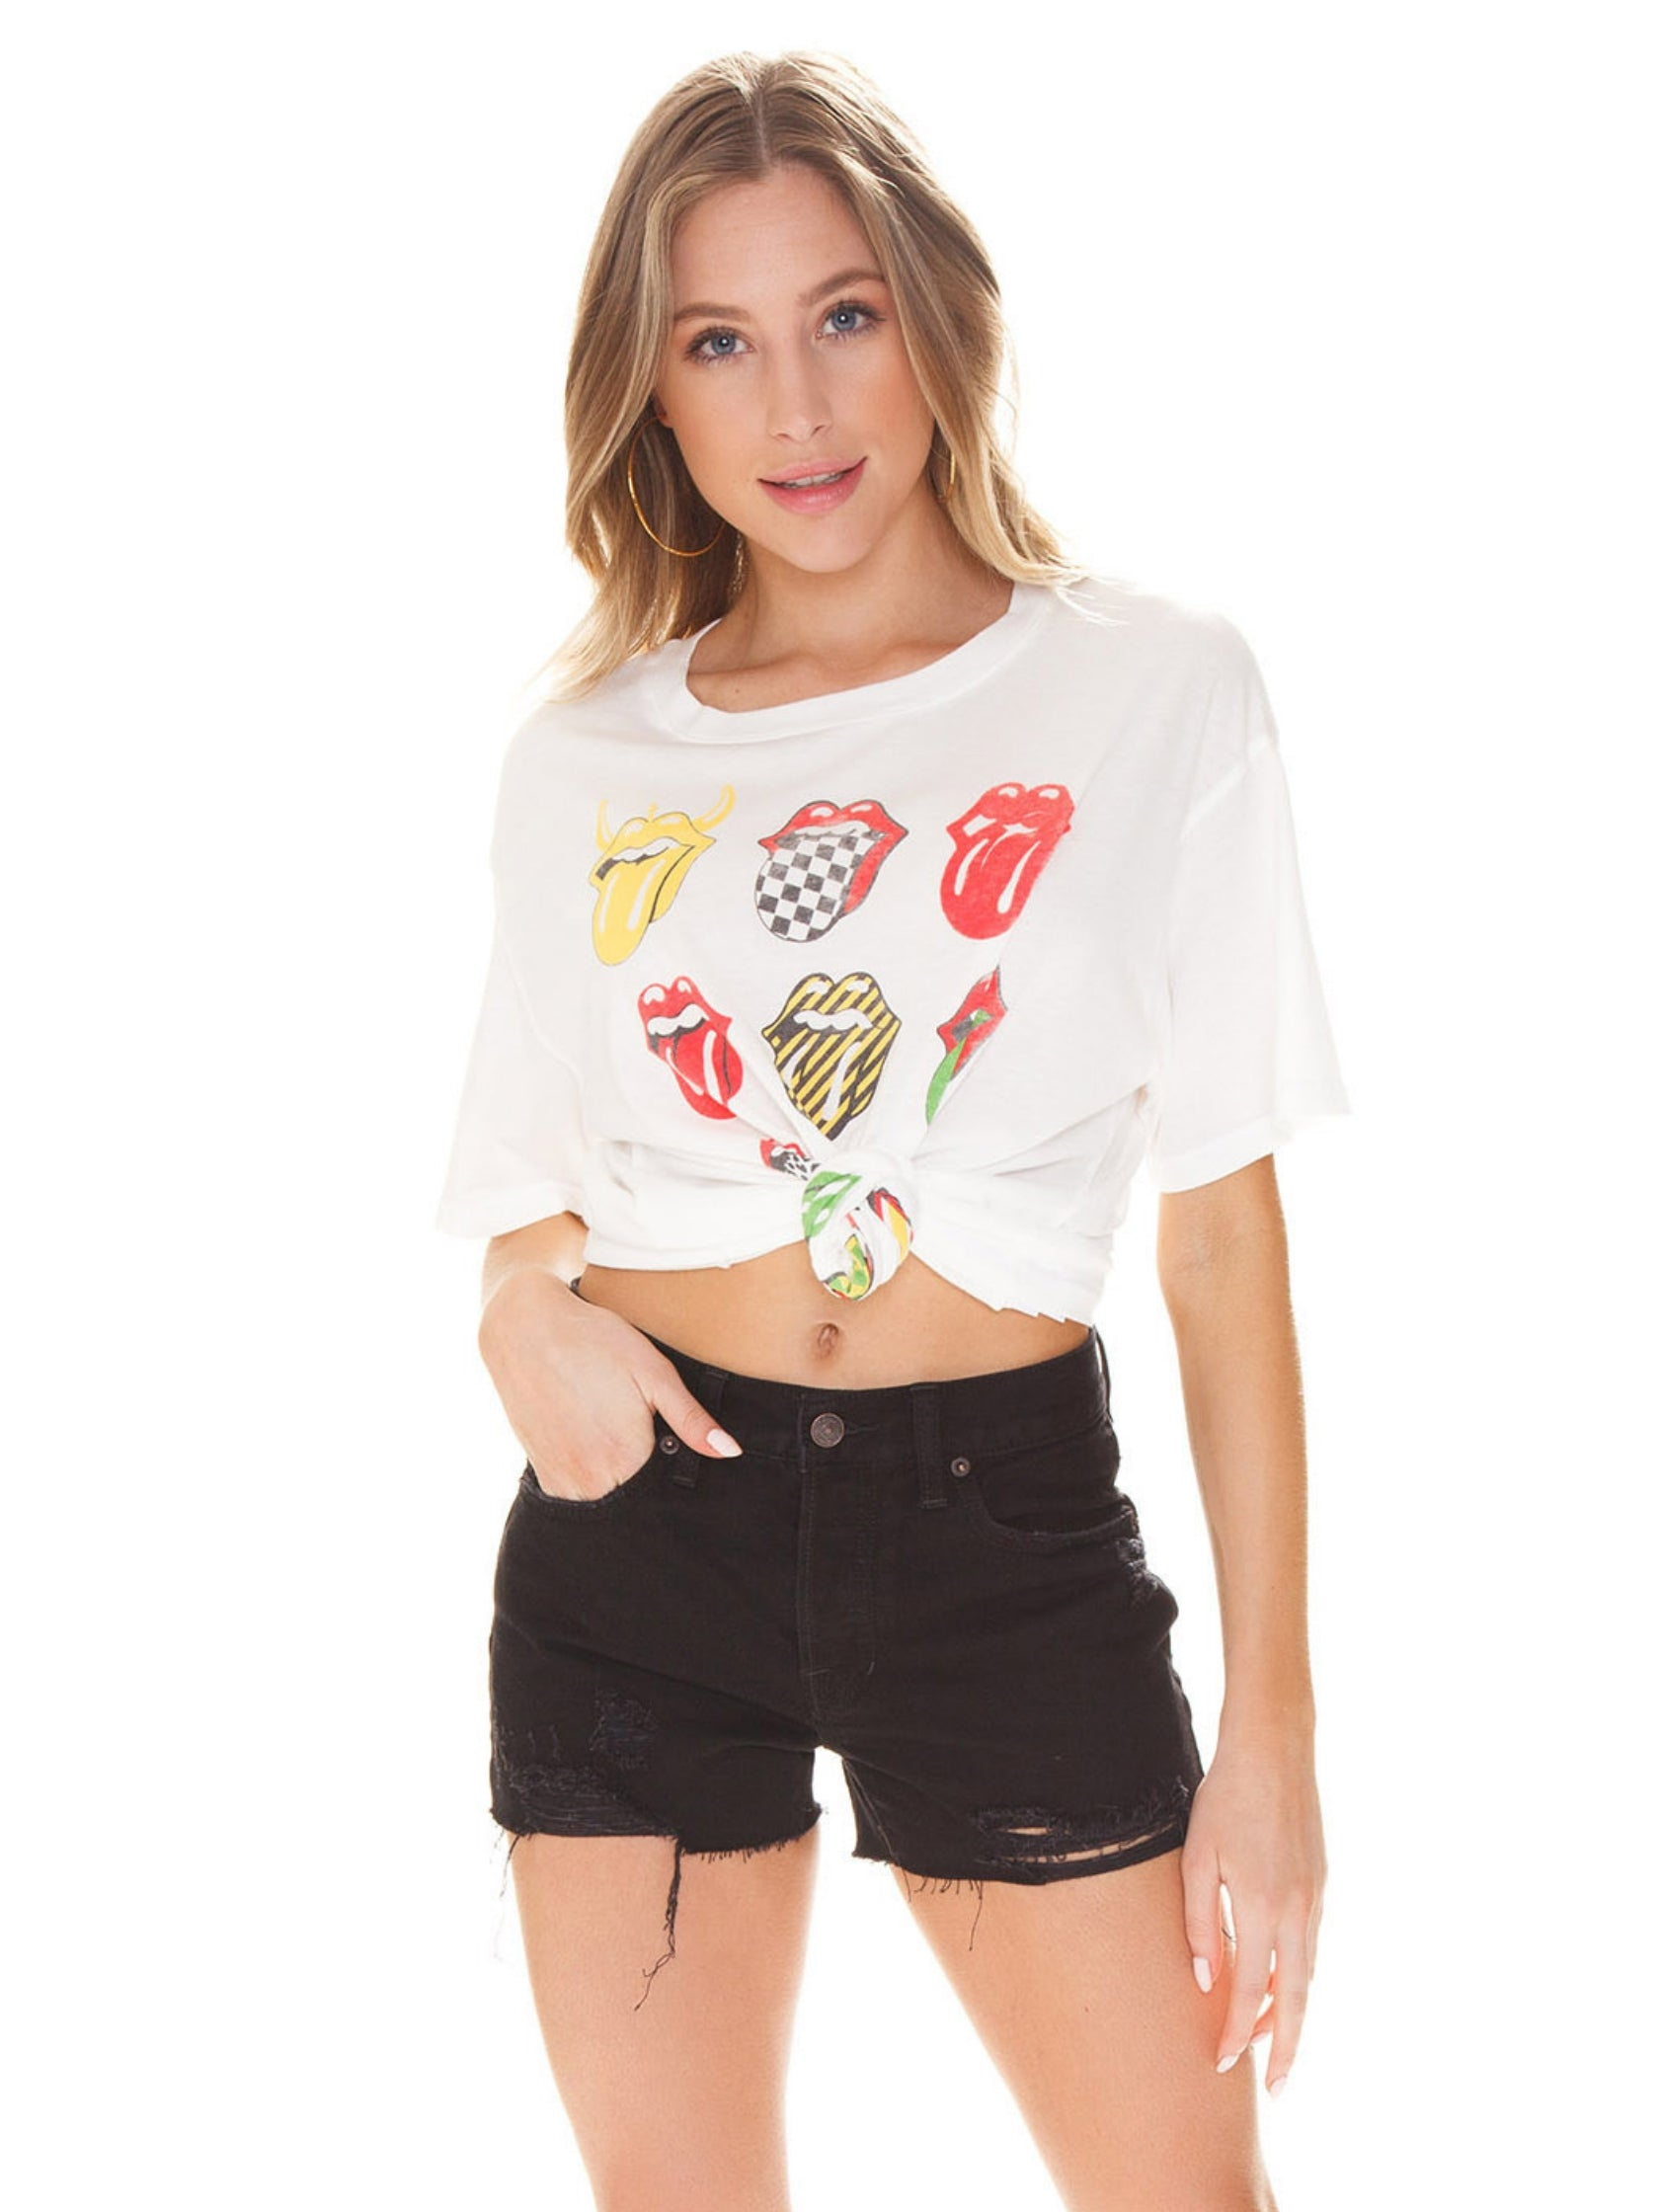 Women outfit in a top rental from DAYDREAMER called Rolling Stones 12 Tongues Boyfriend Tee